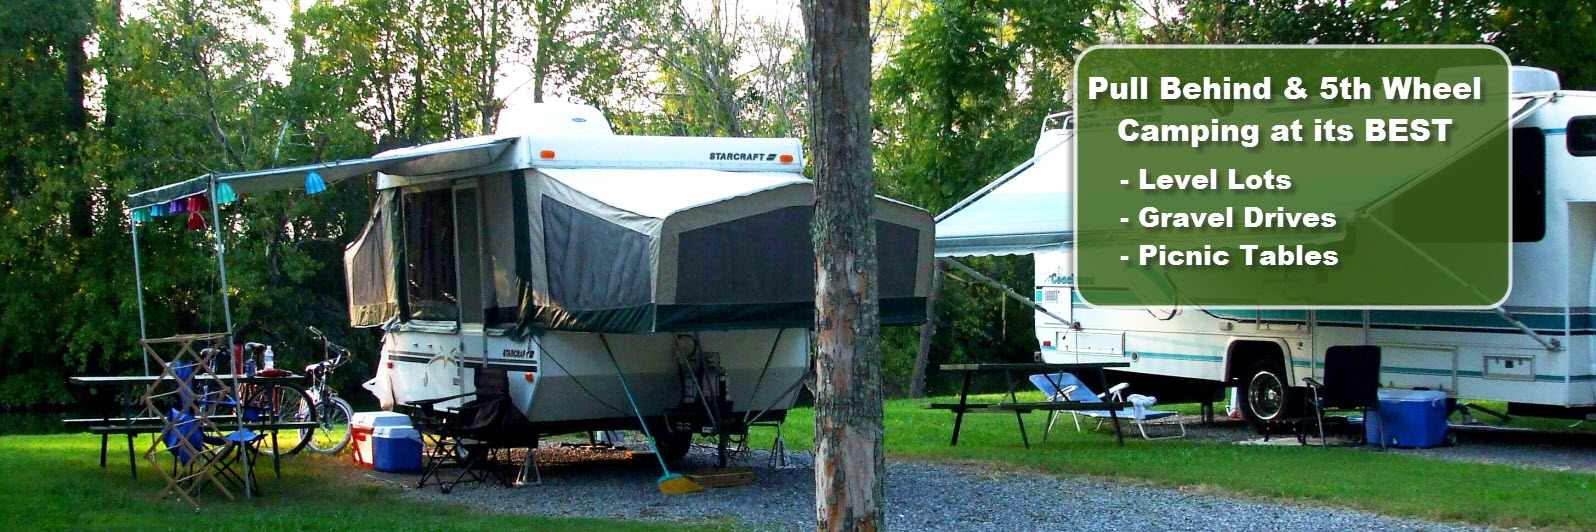 Rv Campgrounds Rv Parks Amp Rv Resorts Which Is Best For